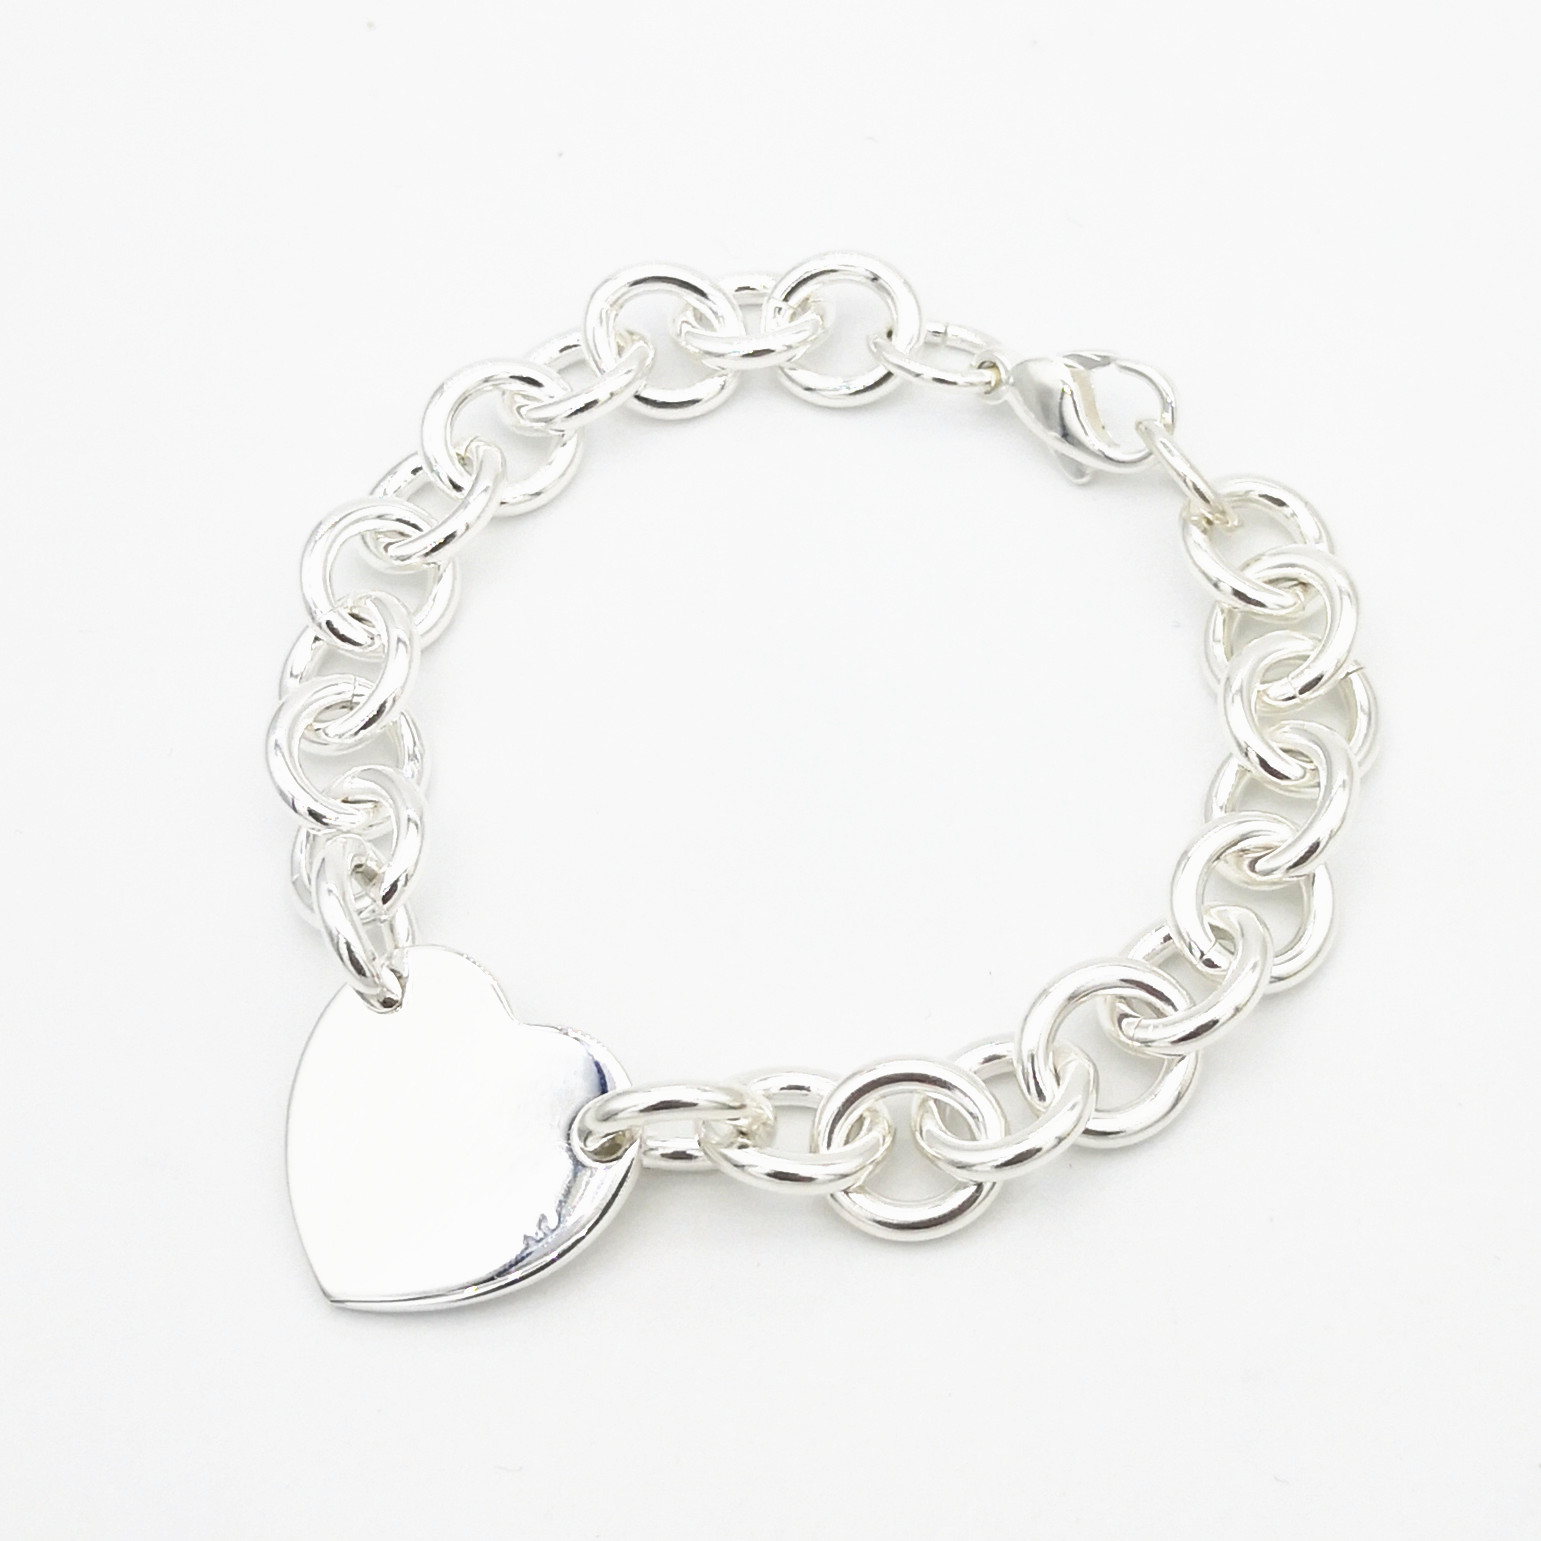 1: 1 sterling silver 925 classic fashion popular heart shaped ladies bracelet jewelry holiday gift